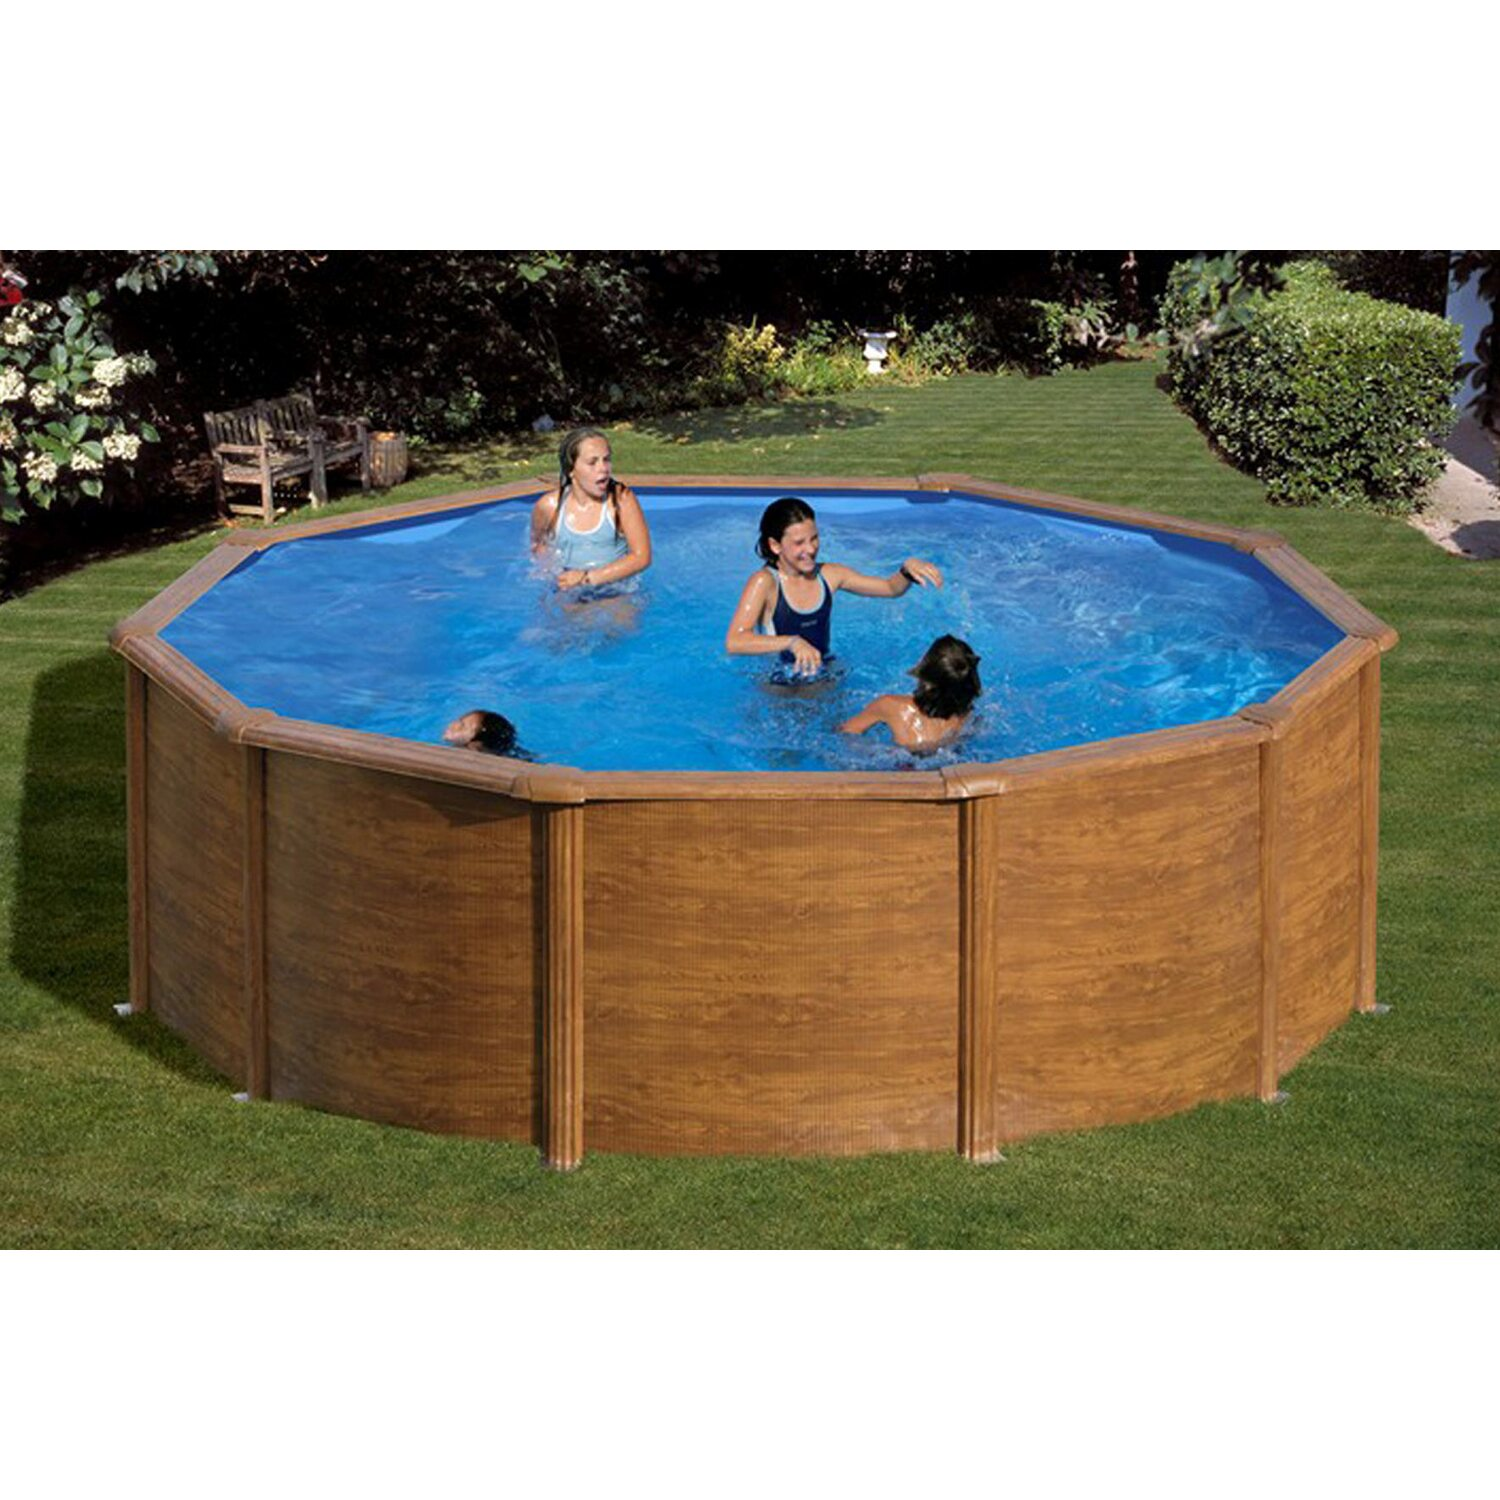 Summer fun stahlwand pool set holz dekor rhodos for Obi intex pool